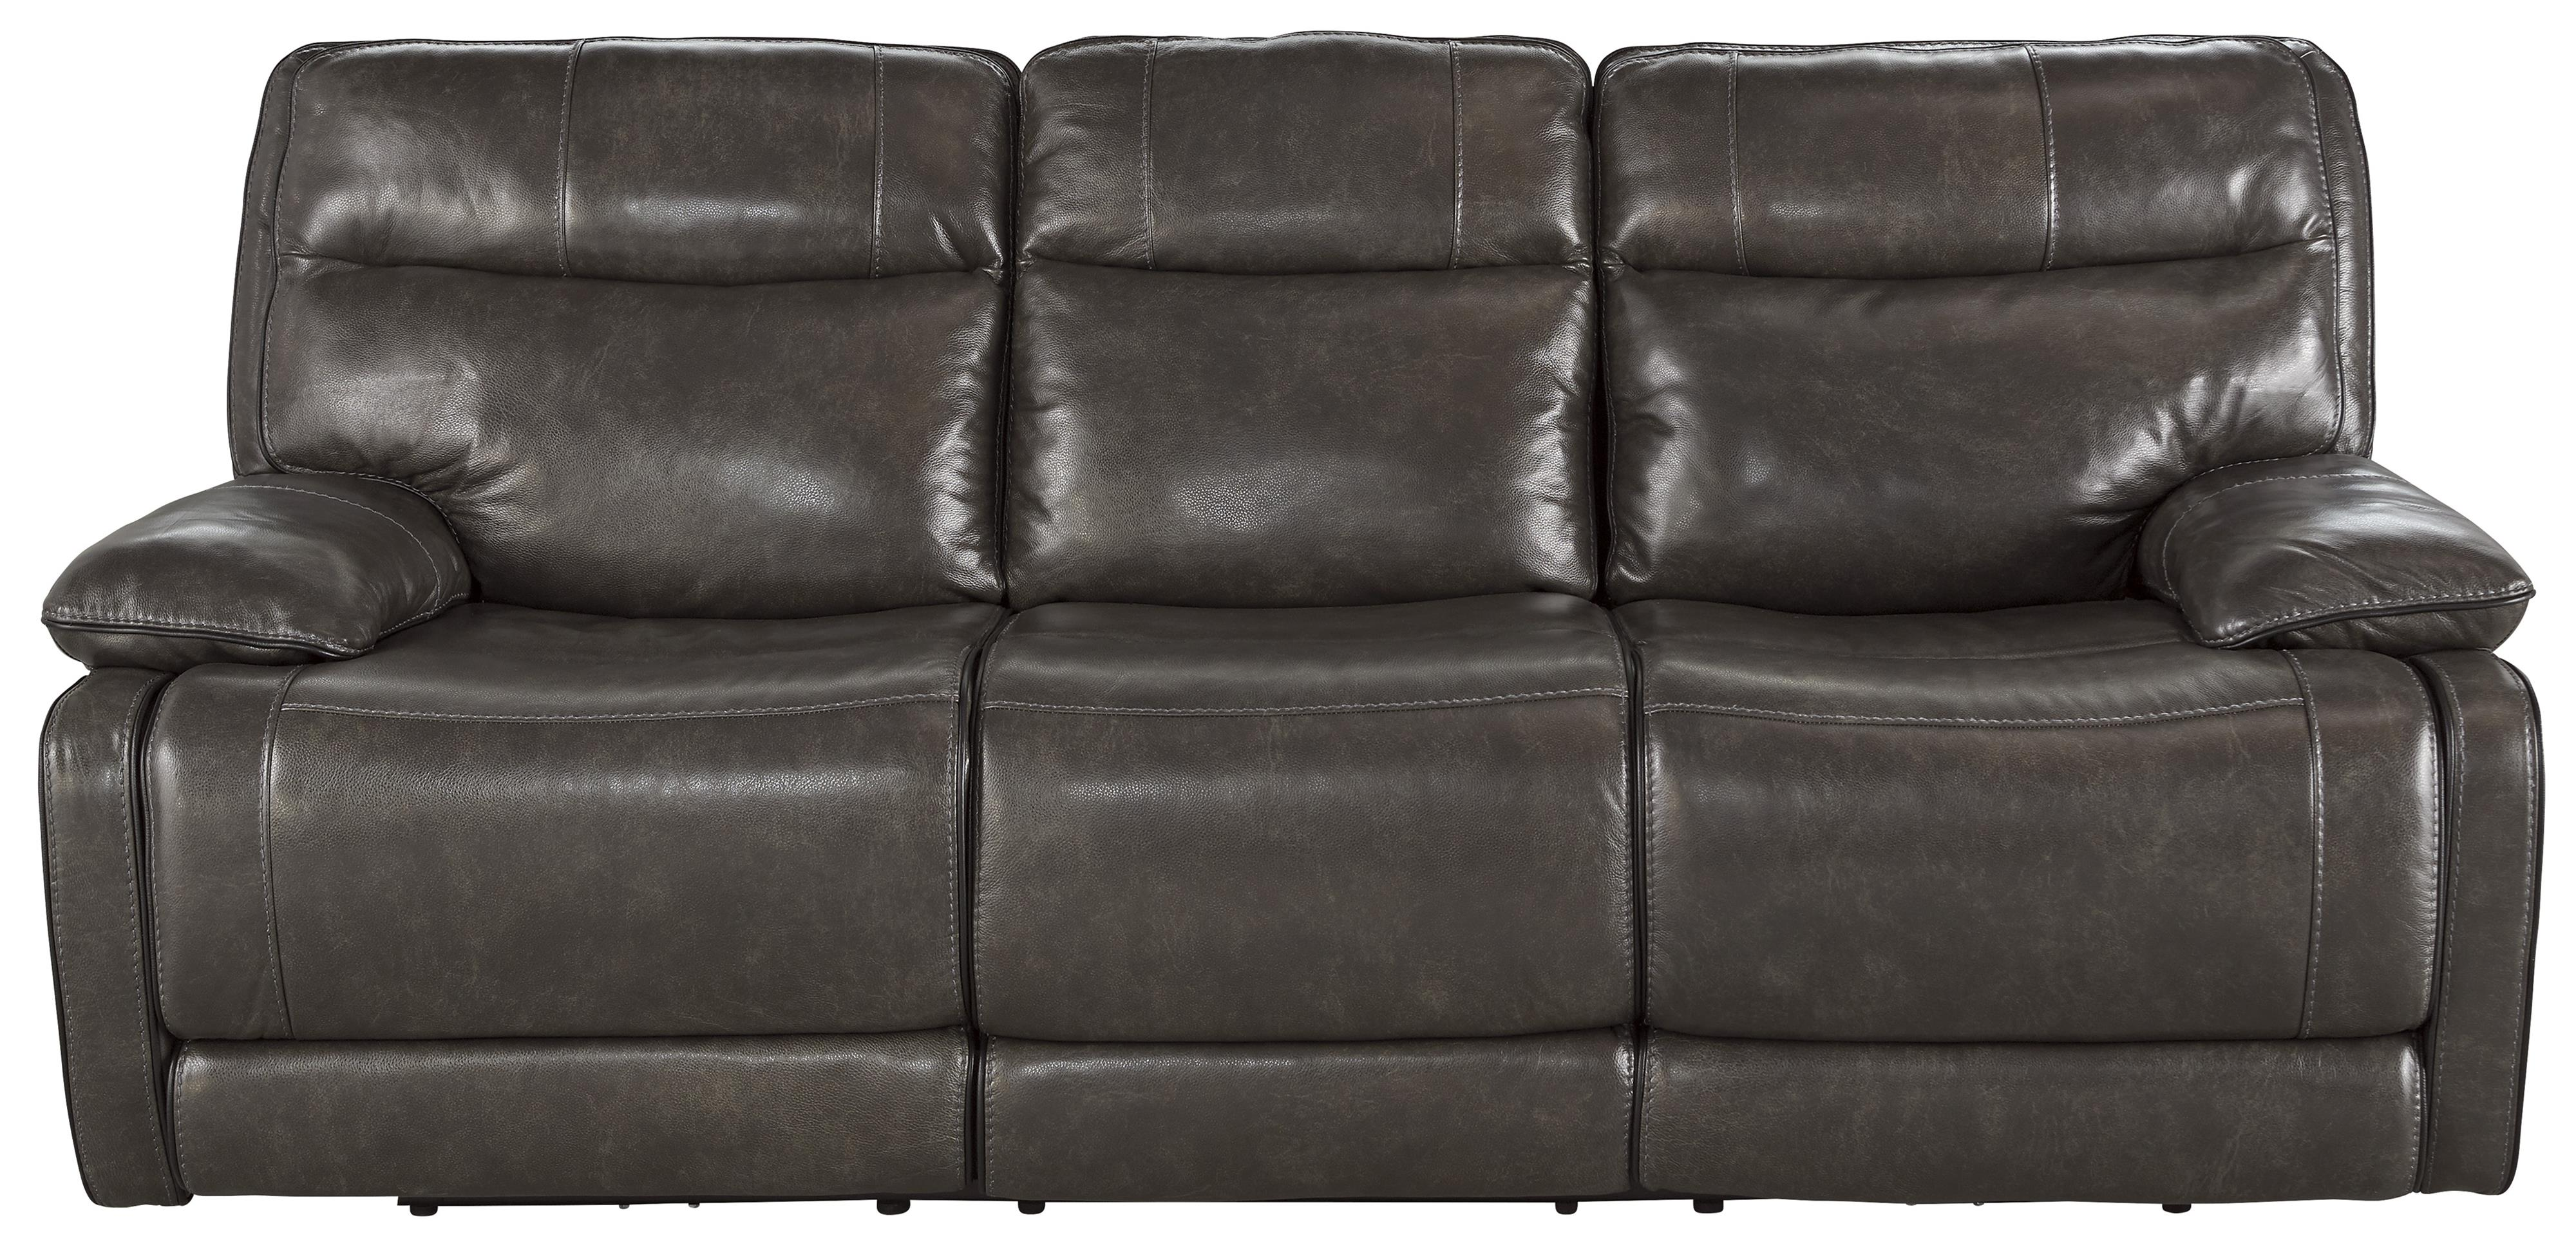 Signature Design by Ashley Palladum Reclining Power Sofa - Item Number: U7260187